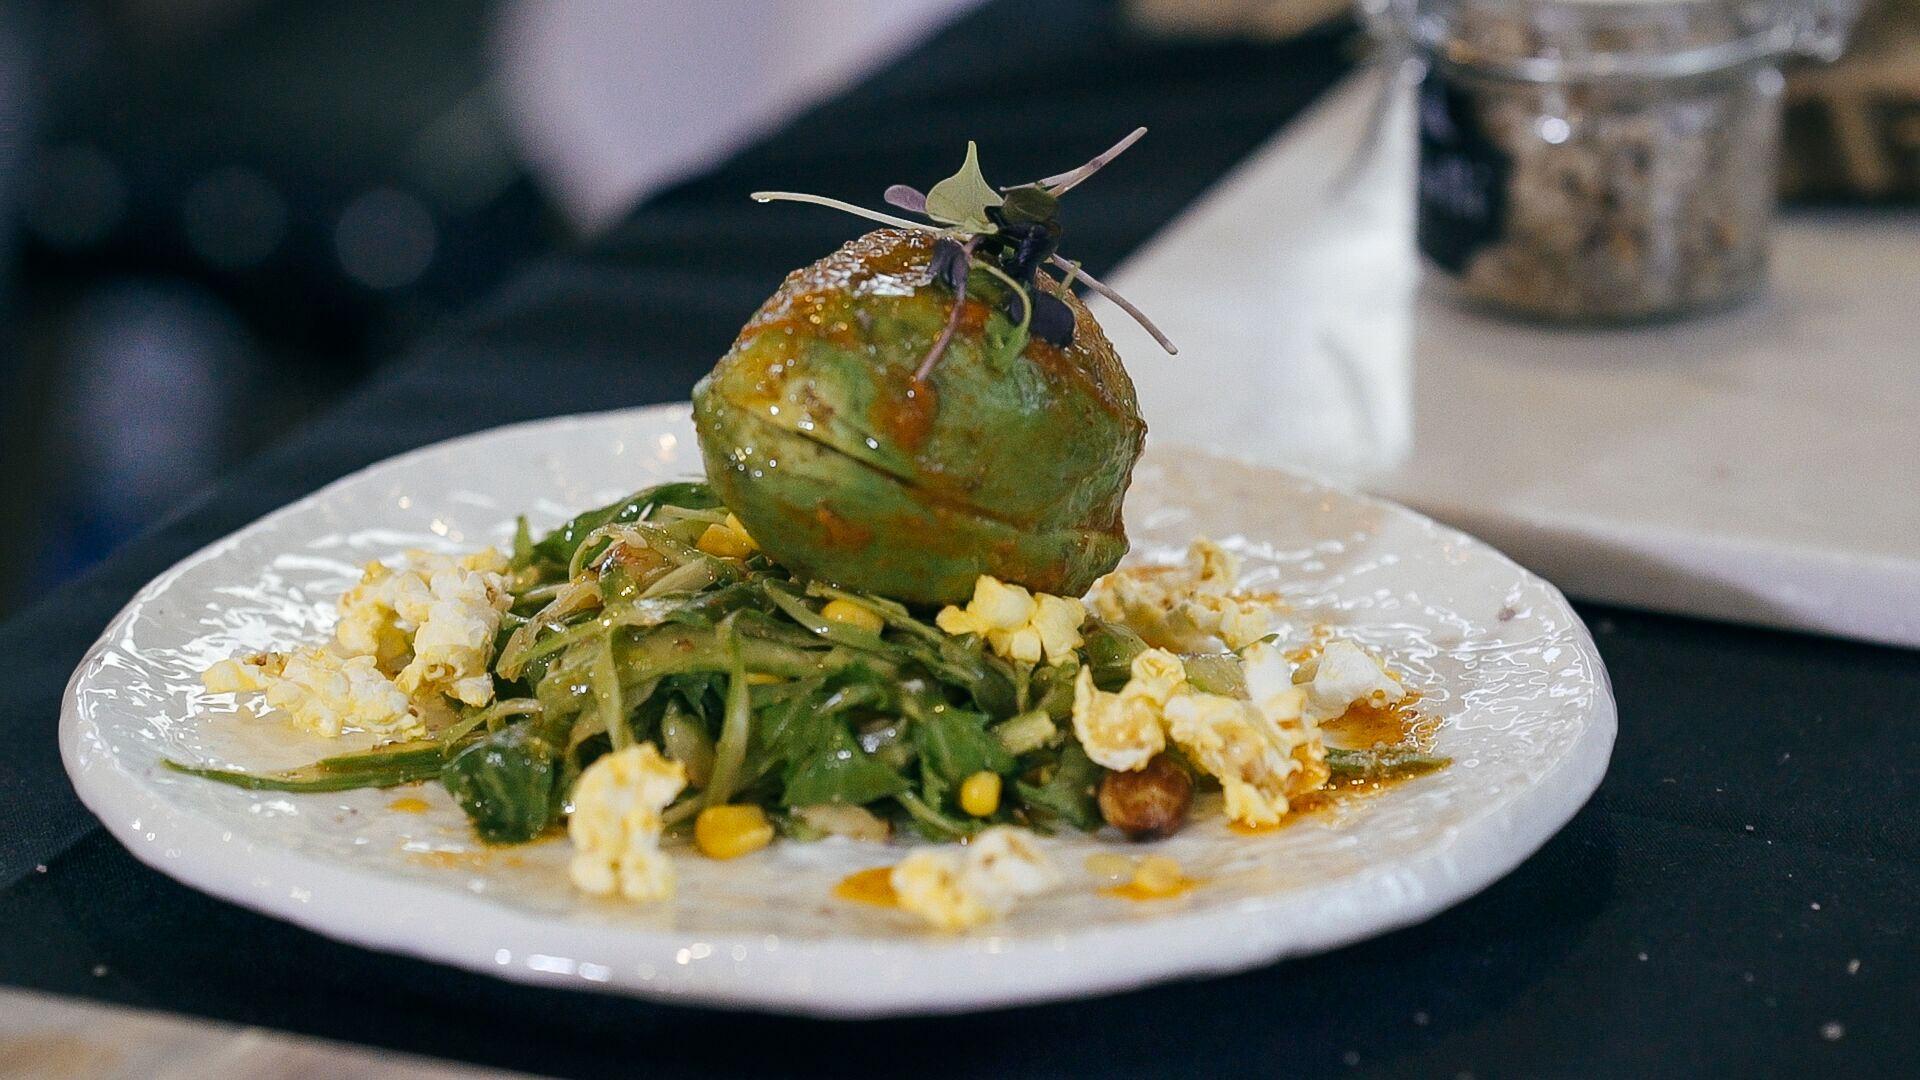 Avocado and Popcorn - This recipe was curated for my art of plating masterclass featuring asparagus and popcorn.